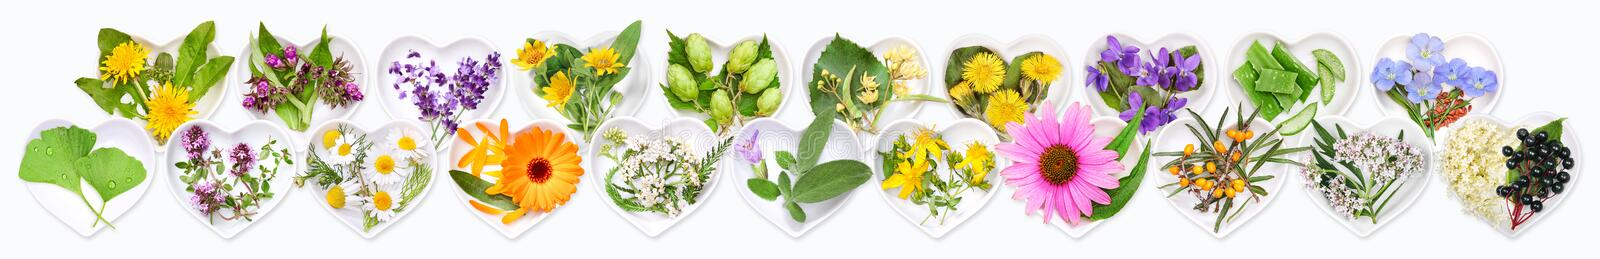 The most important medicinal plants stock photography